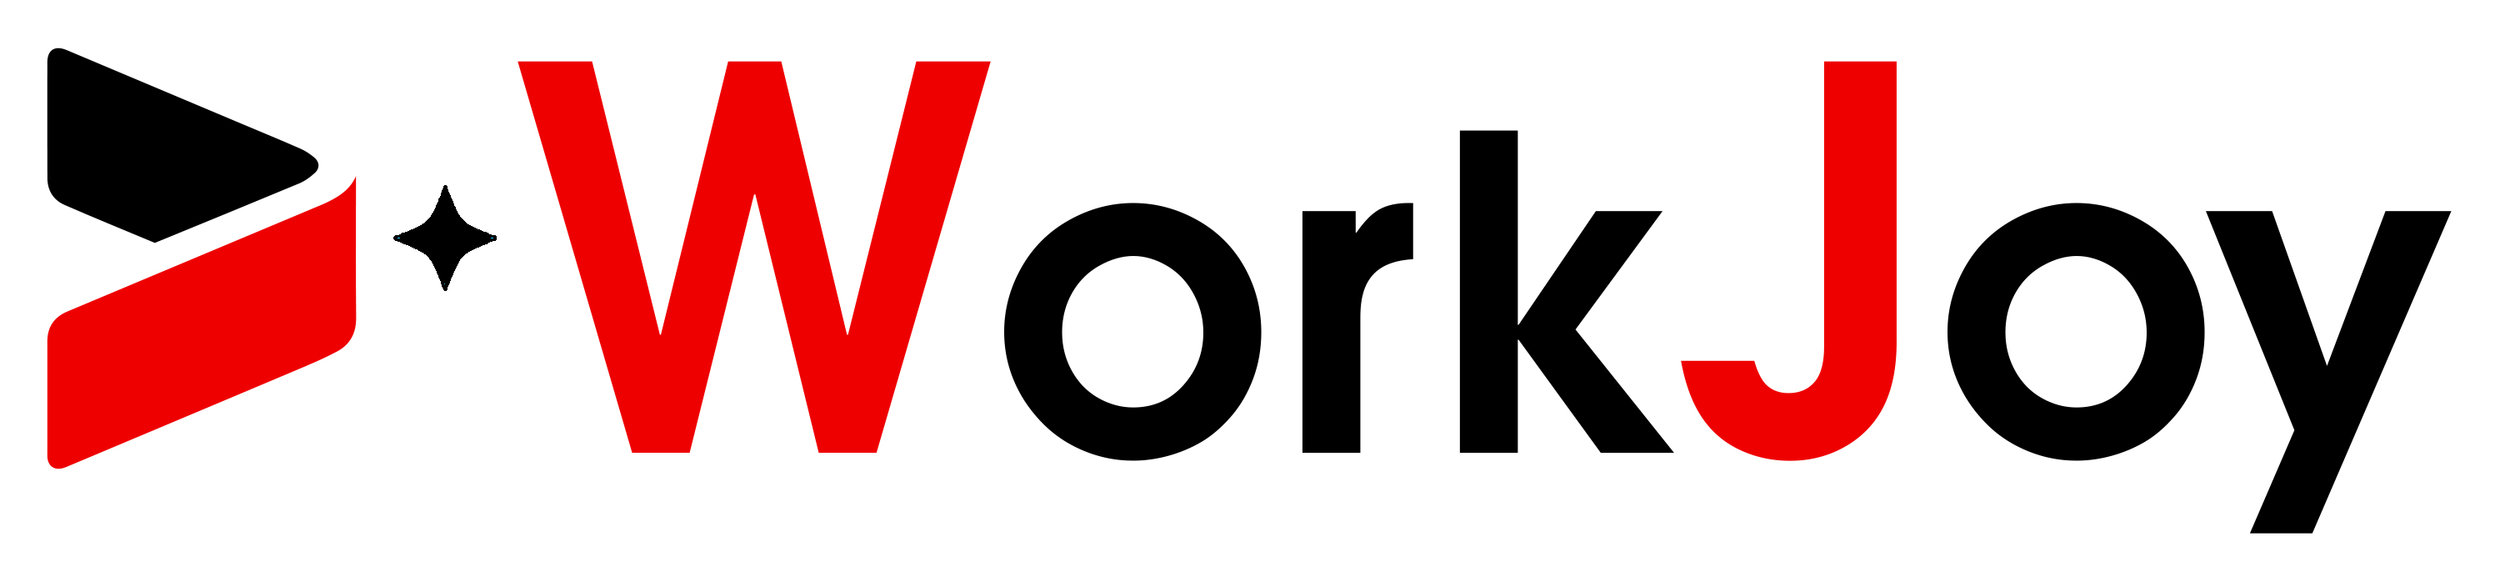 WorkJoy-Logo-PNG.jpg